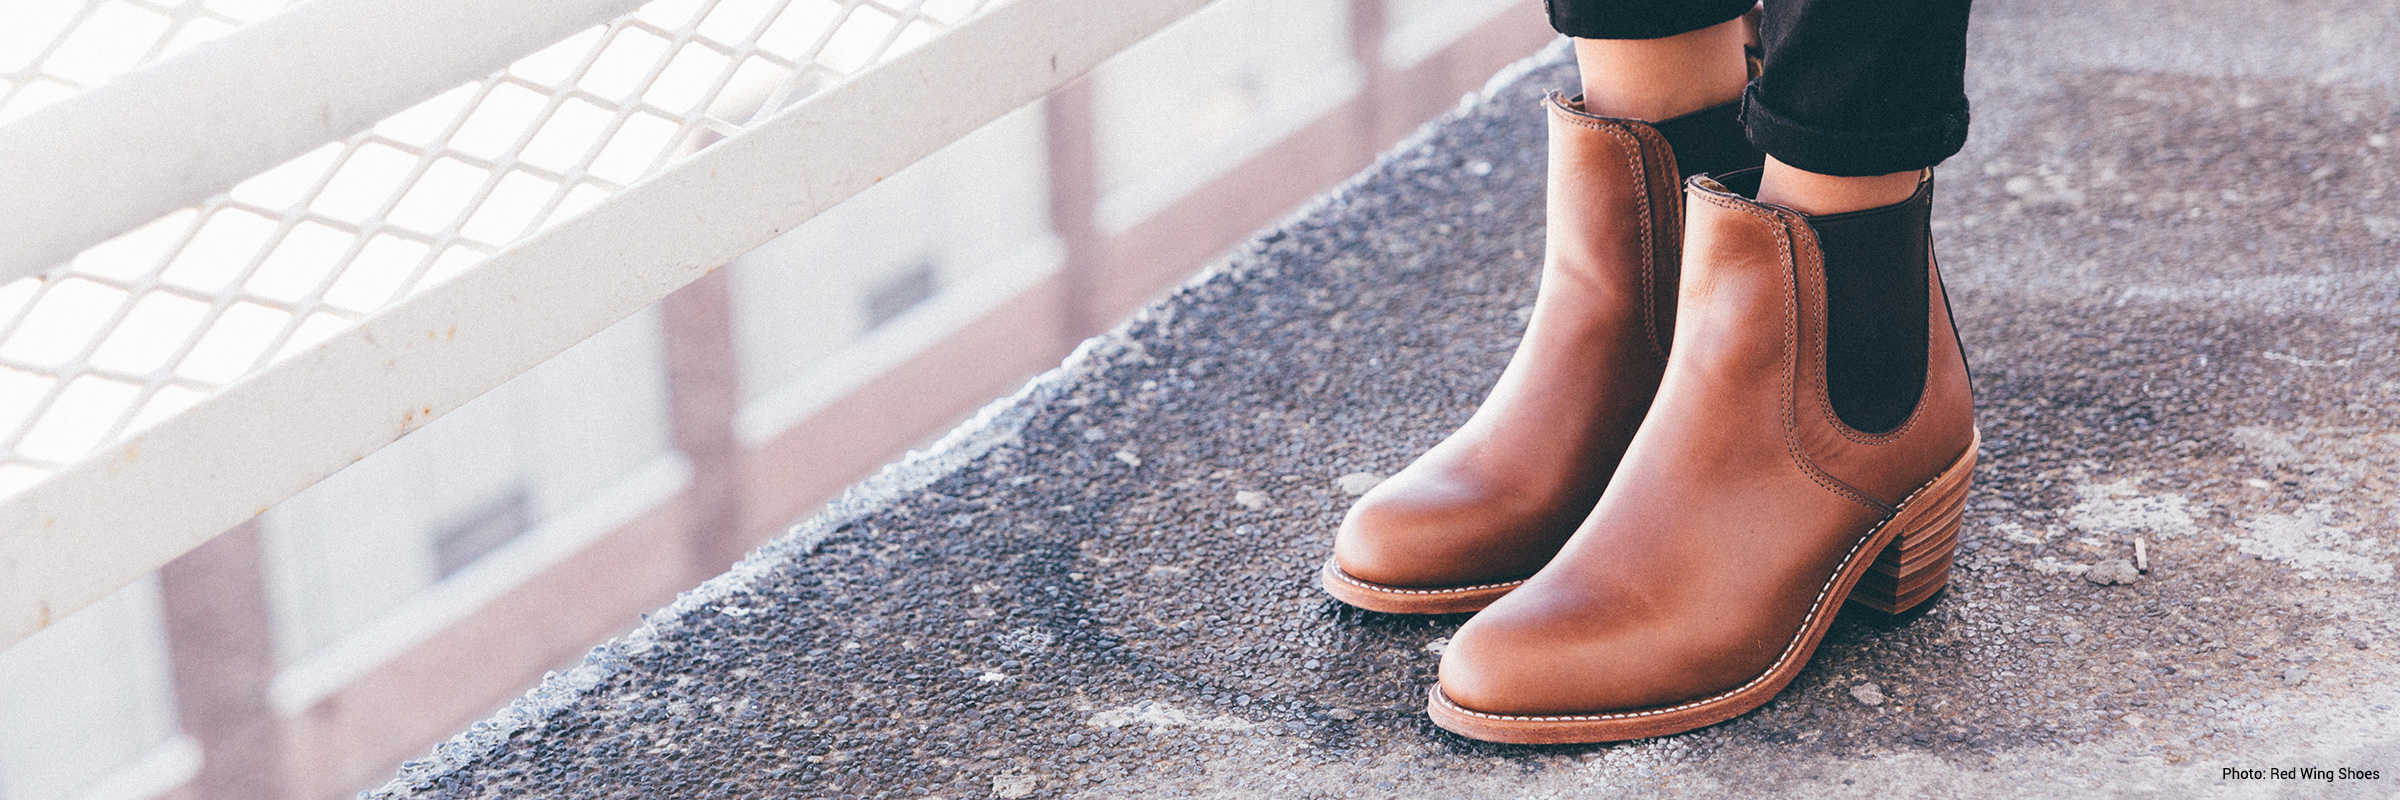 Boots stylish for womens foto